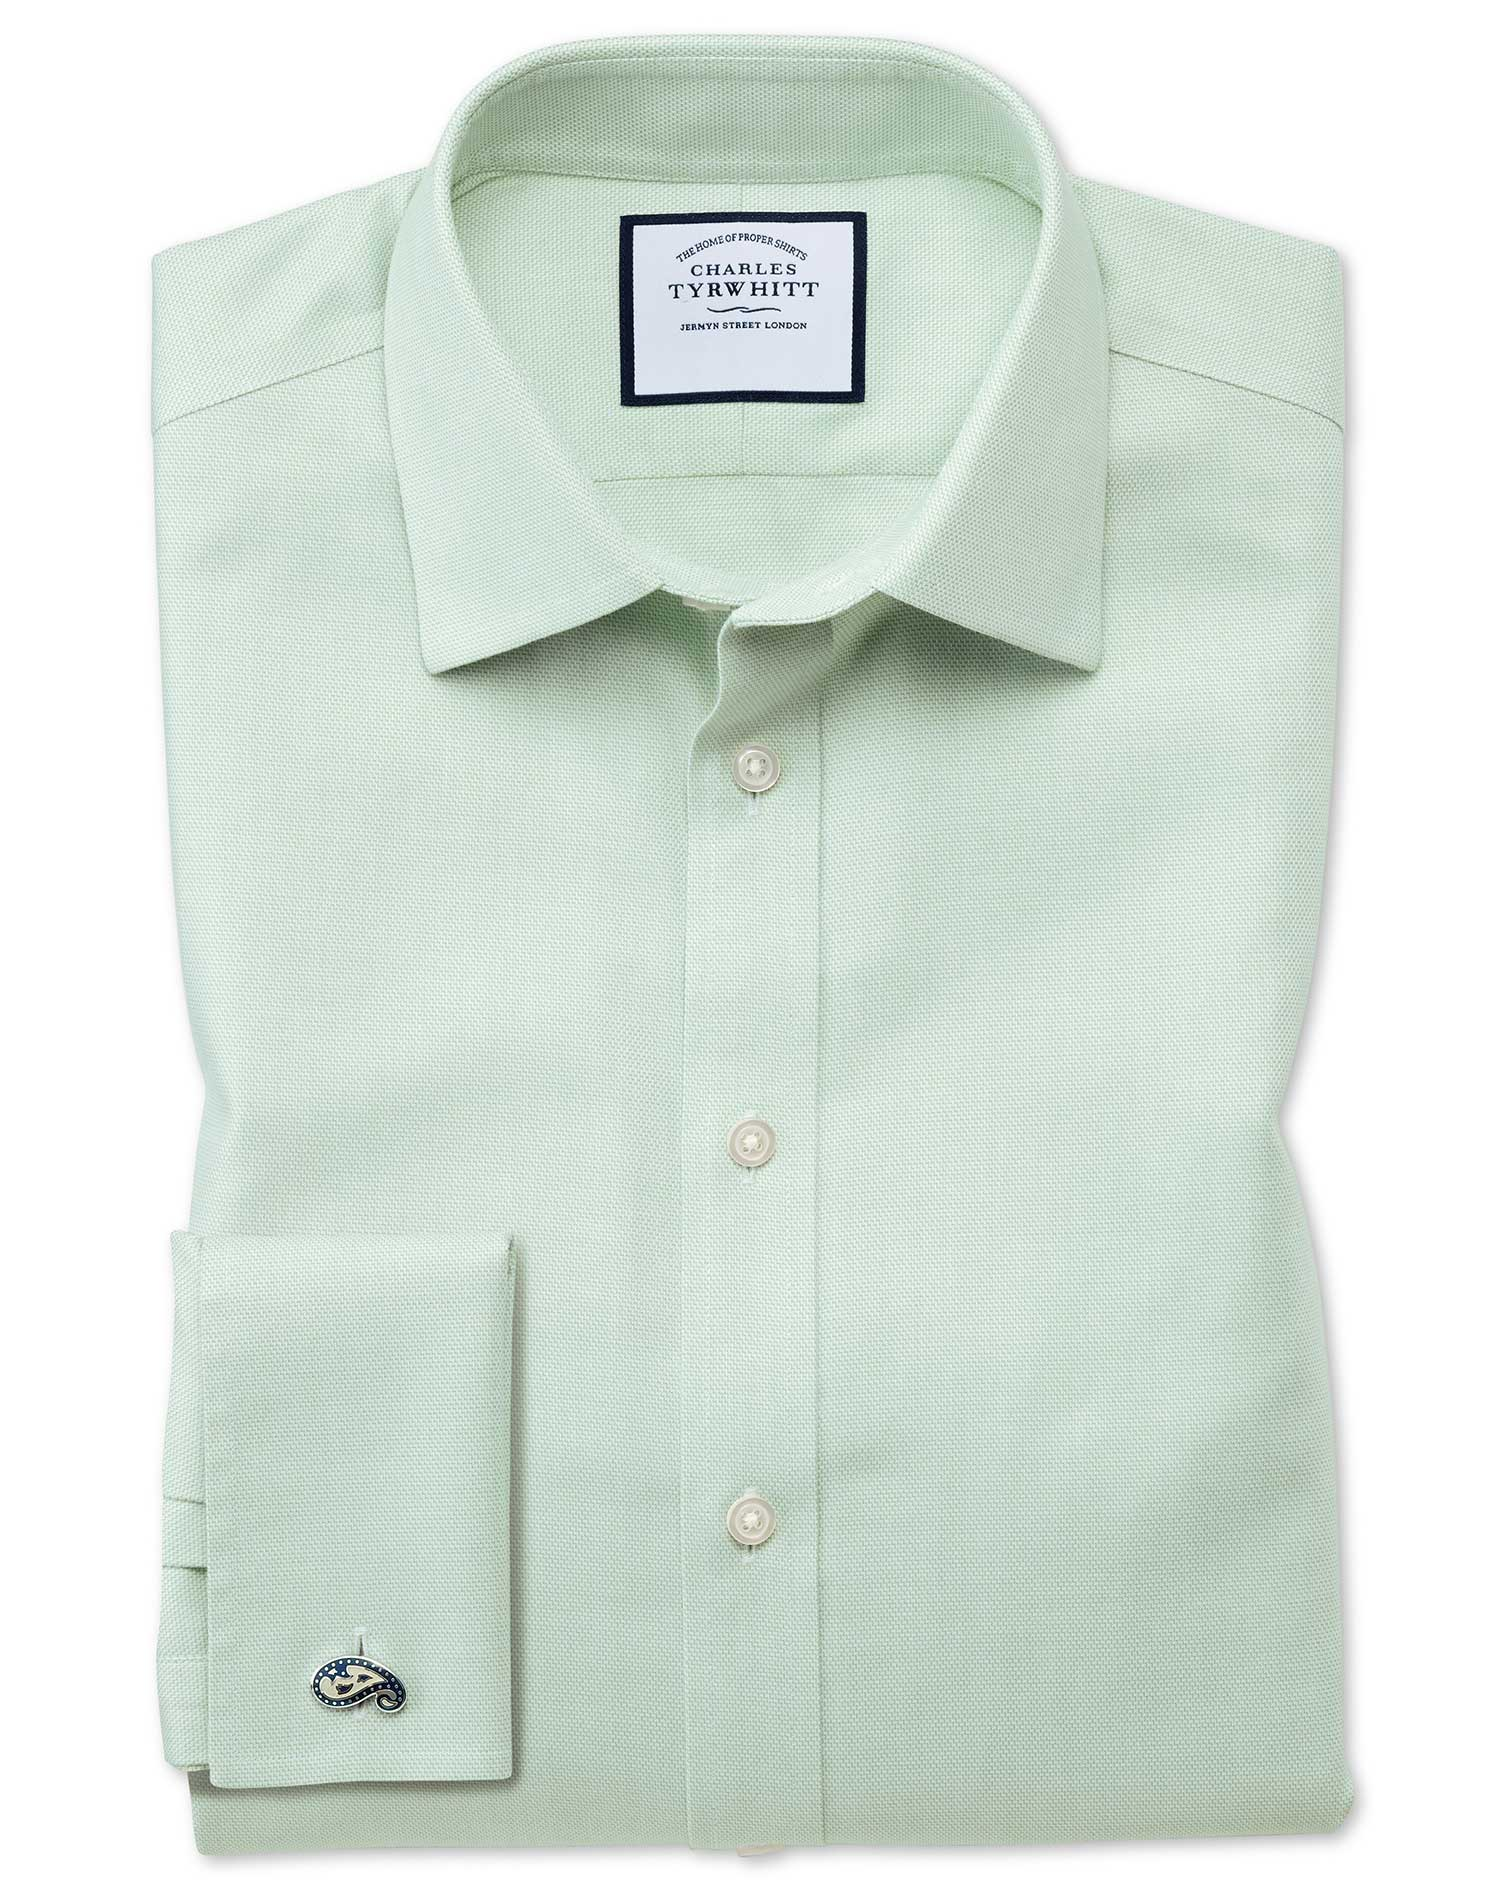 Classic Fit Non-Iron Step Weave Green Cotton Formal Shirt Single Cuff Size 15/33 by Charles Tyrwhitt